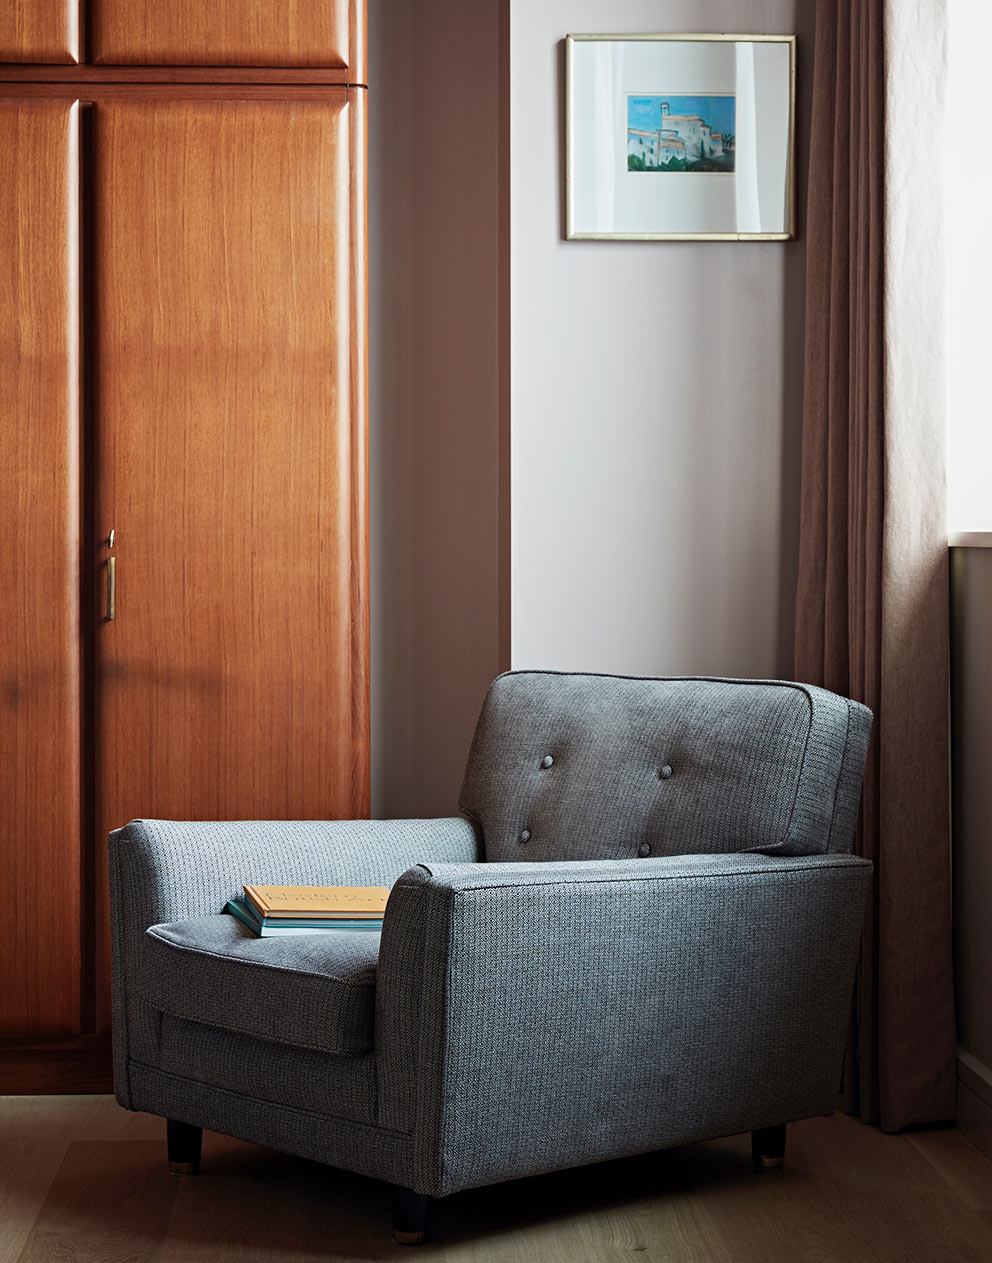 West London pied-a-terre upholstered armchair and vintage wooden wardrobe